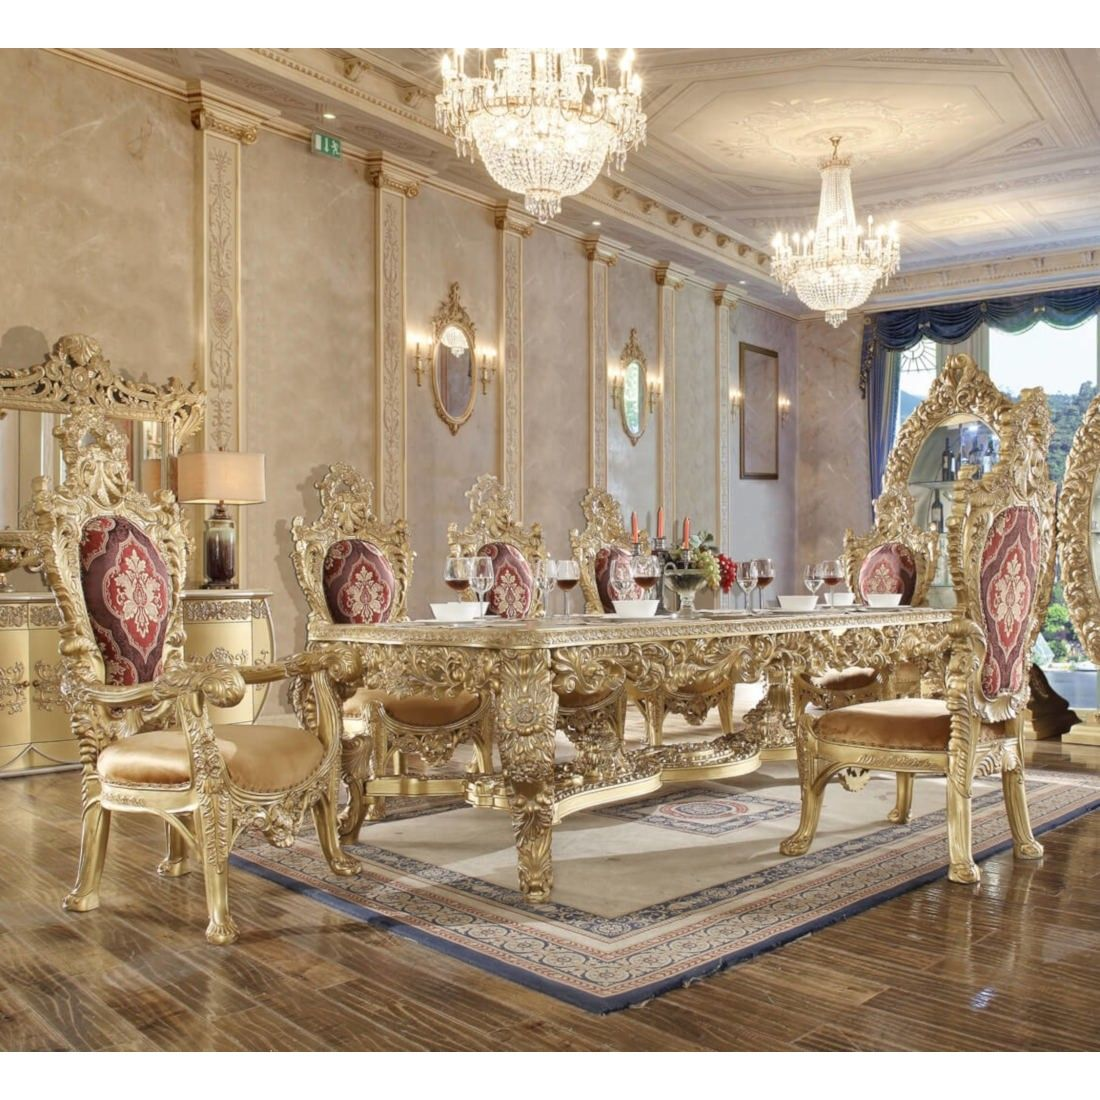 Elegant Tableware For Dining Rooms With Style: Homey Design HD-8086 7pc Long Dining Table Set In Gold